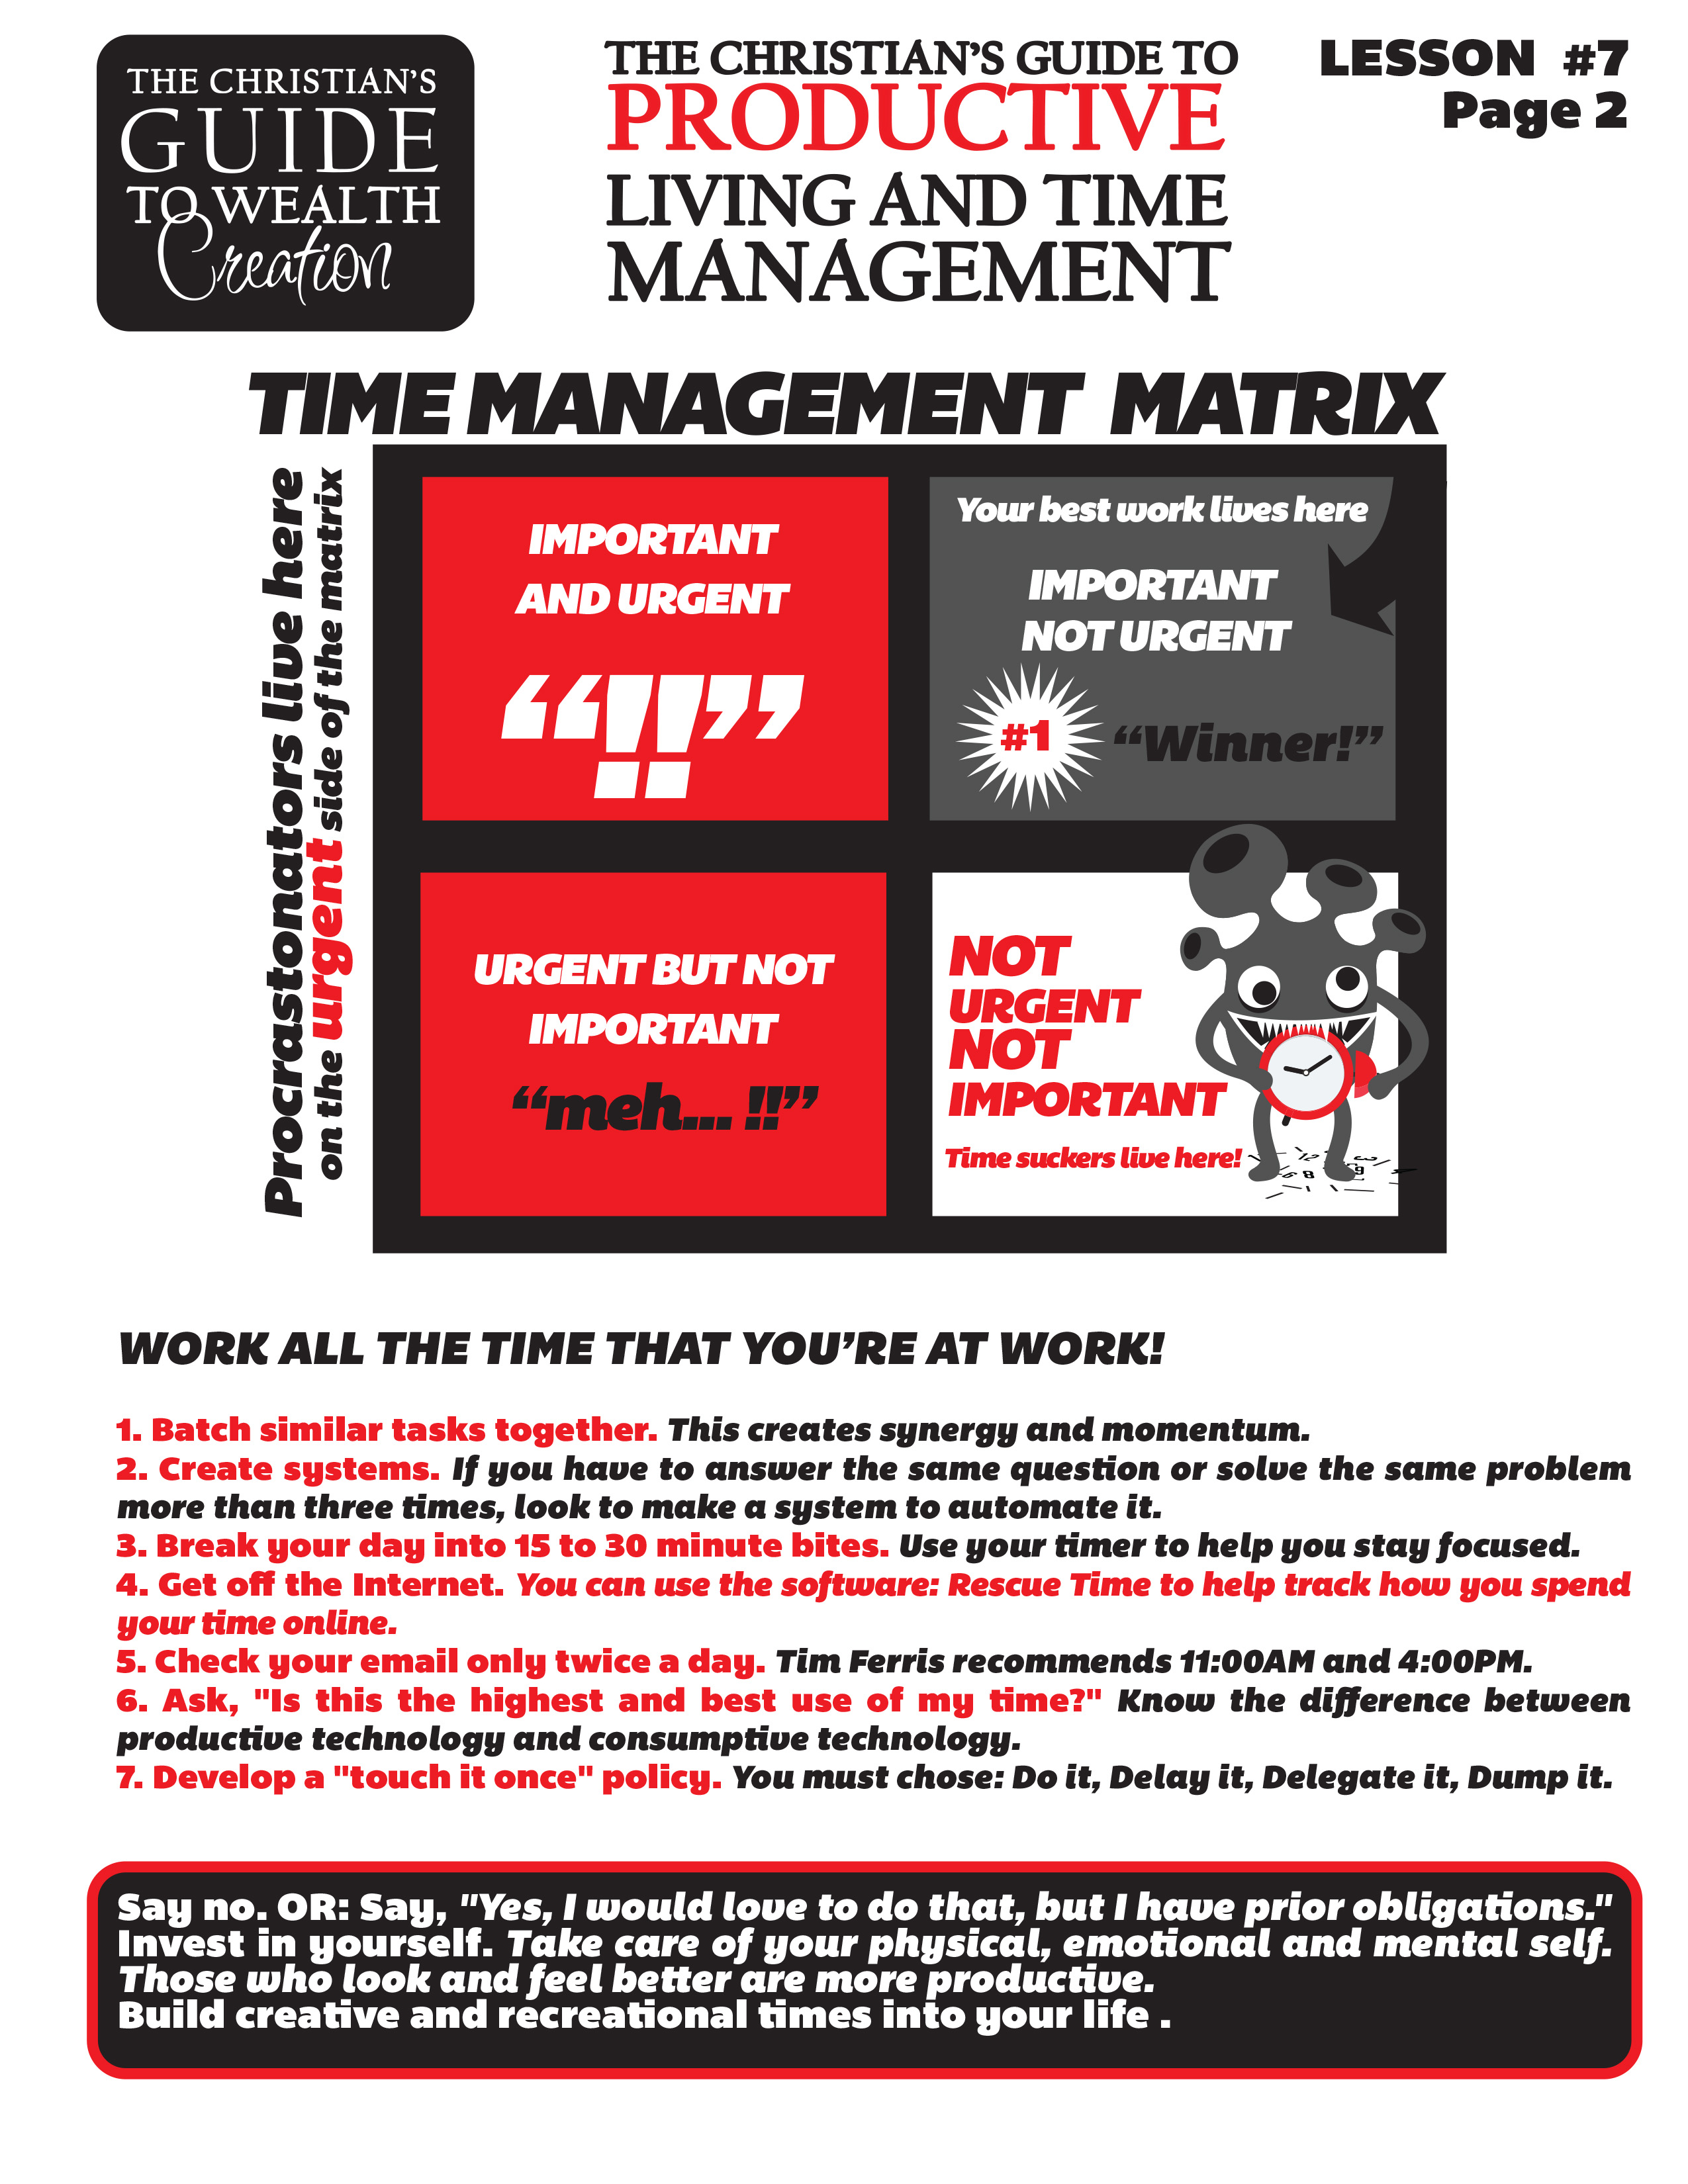 Lesson 7 The Christian's Guide to Productive Living and Time Management Page 2.jpg